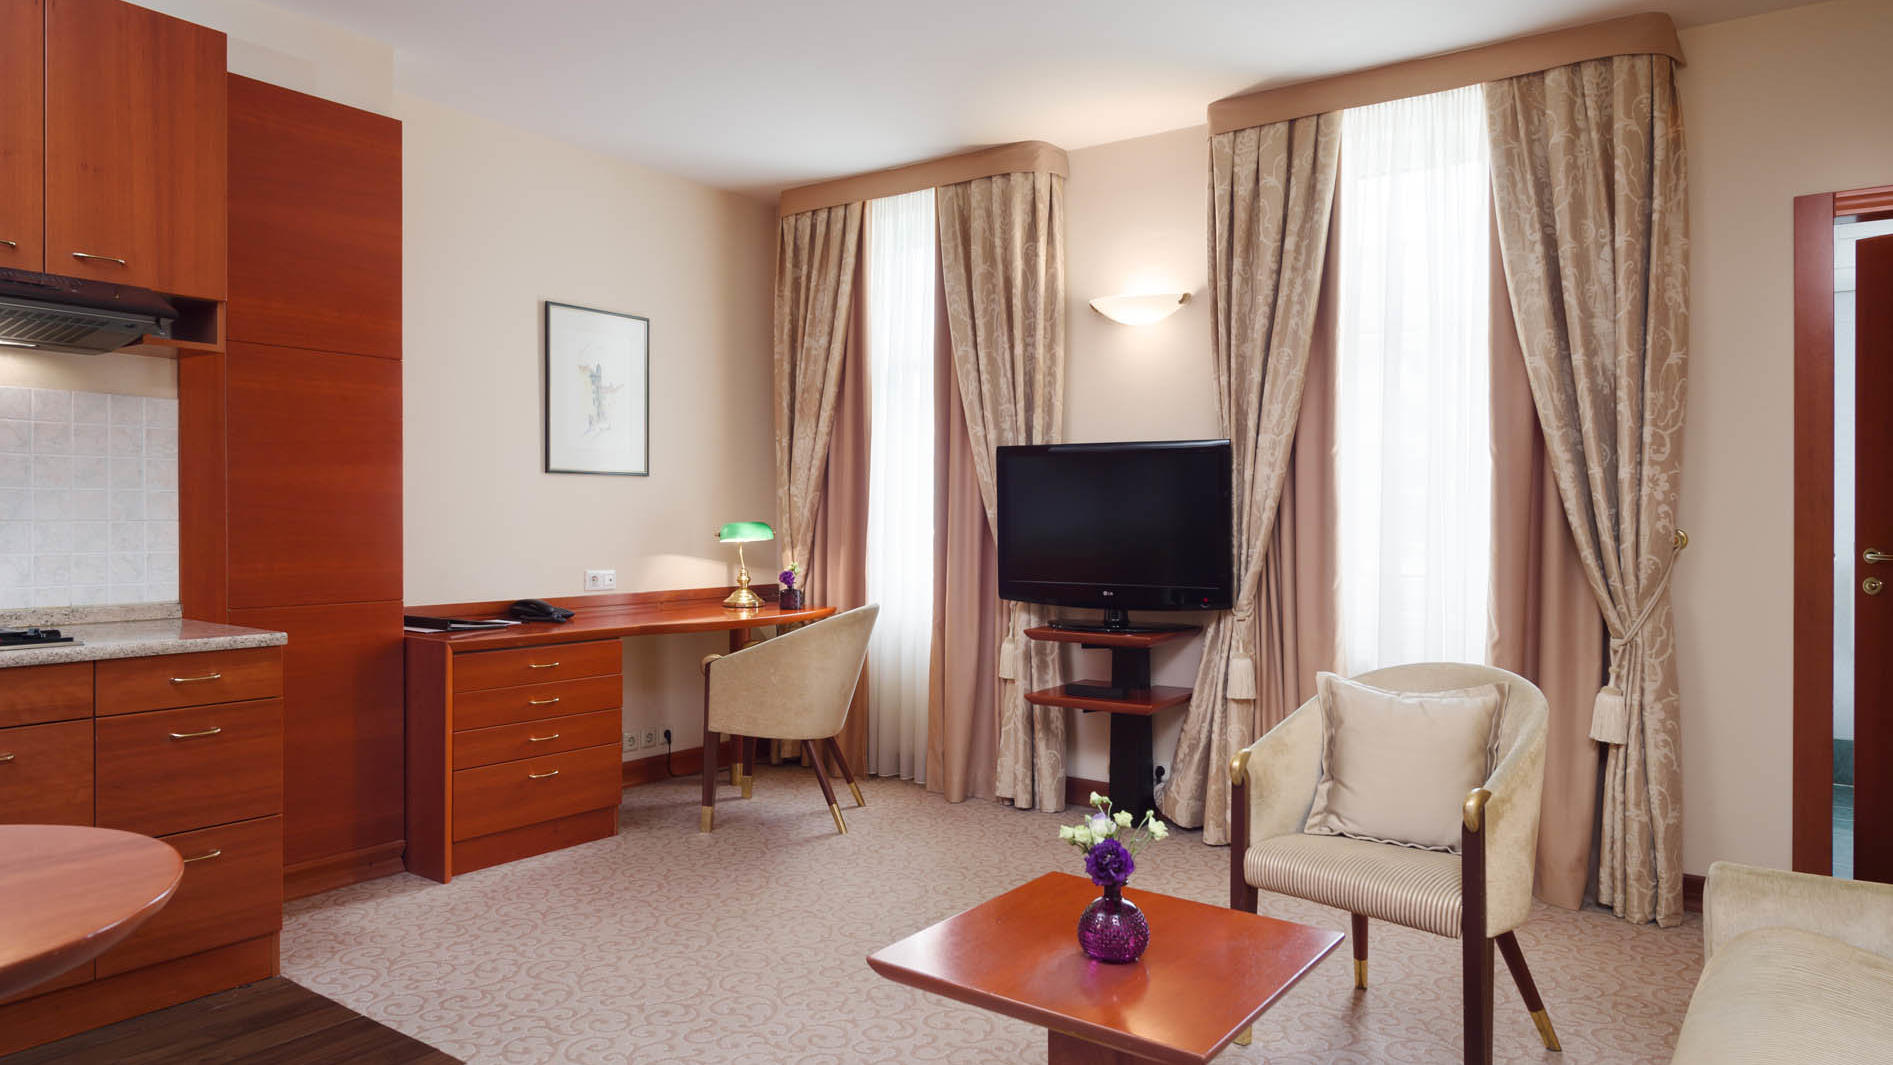 Studio Apartment at Grand Hotel Union in Ljubljana